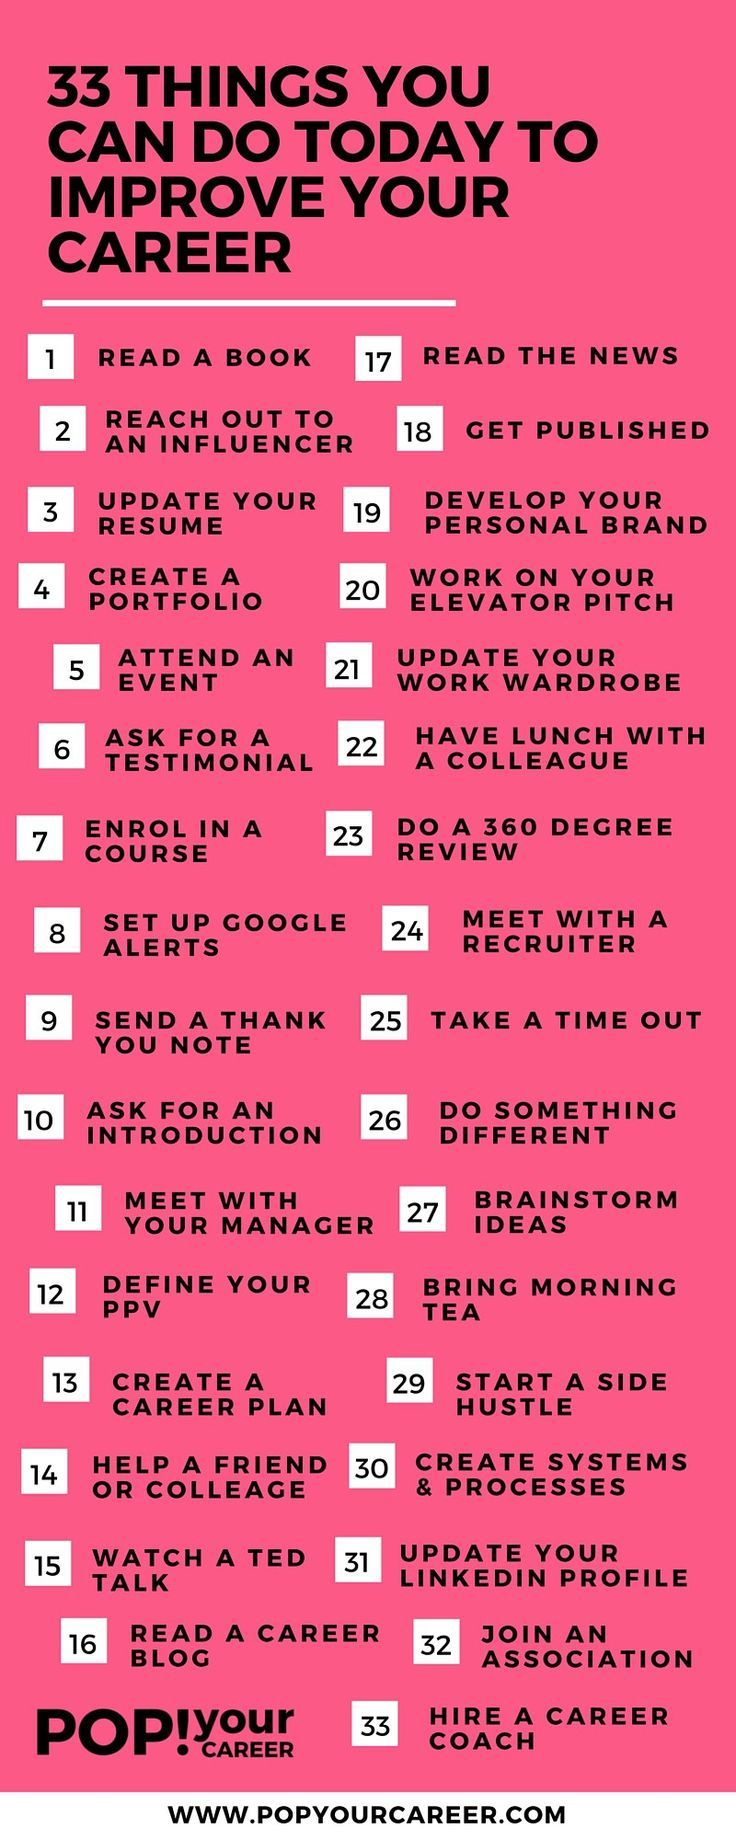 859 best images about Classy Career Advice on Pinterest | Read ...